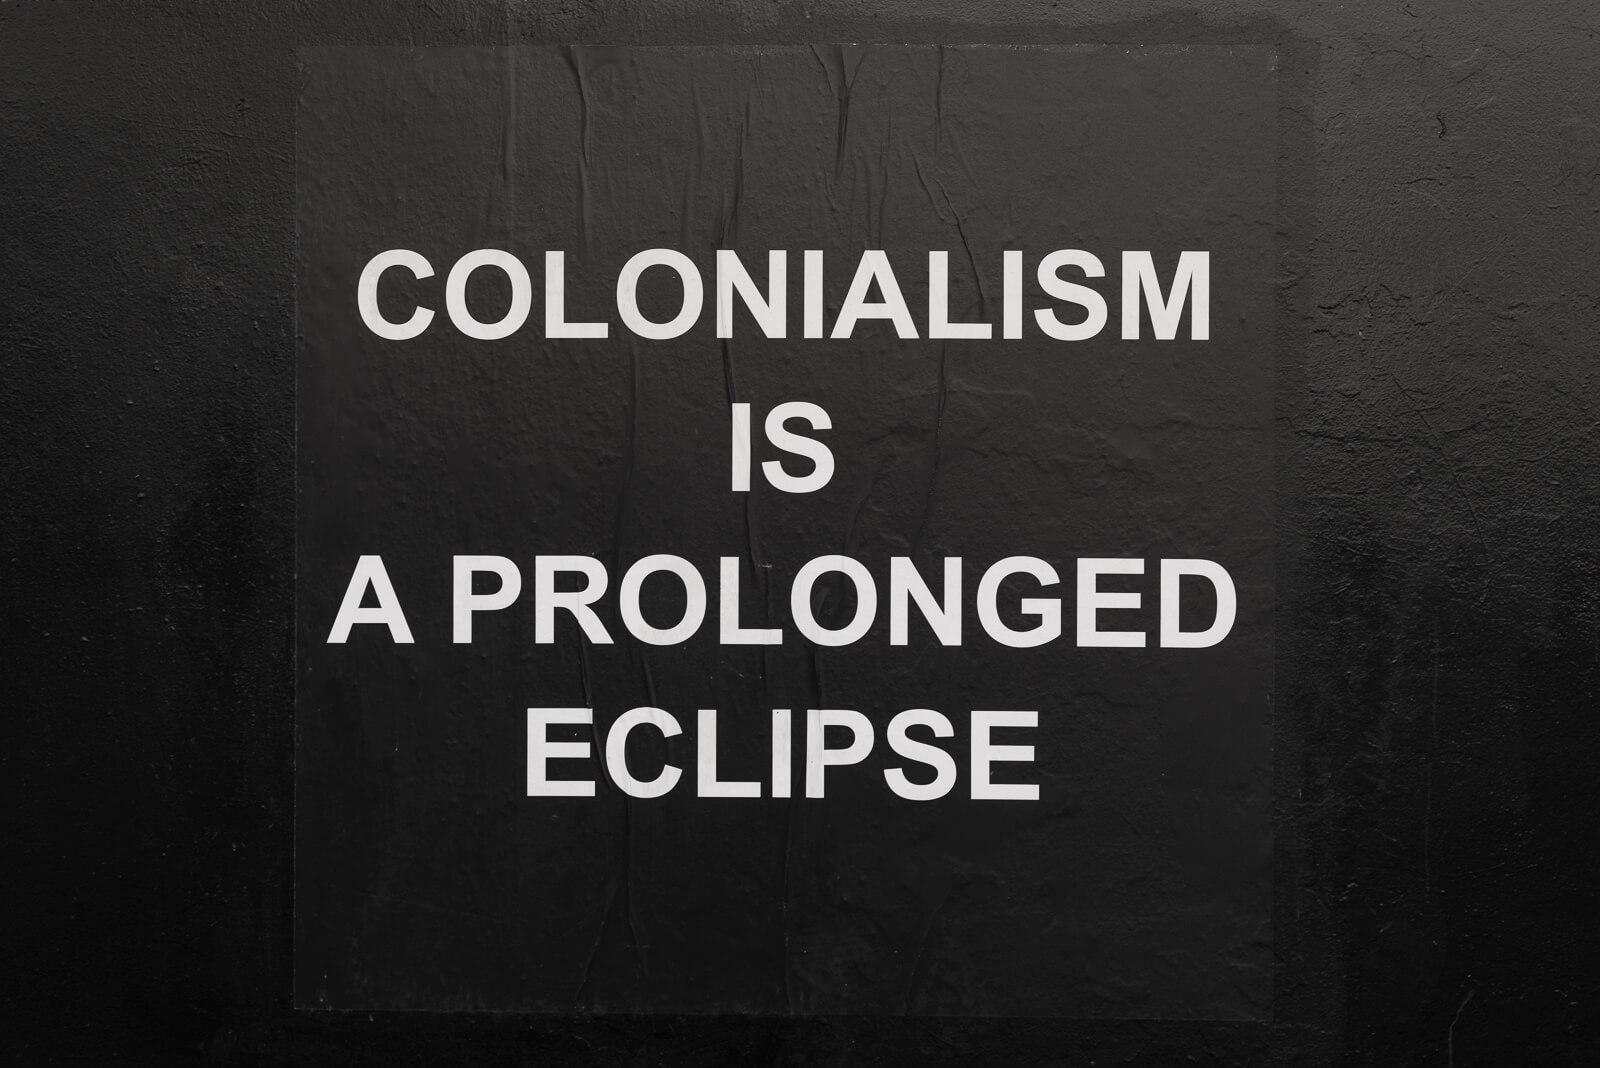 Colonial Eclipse